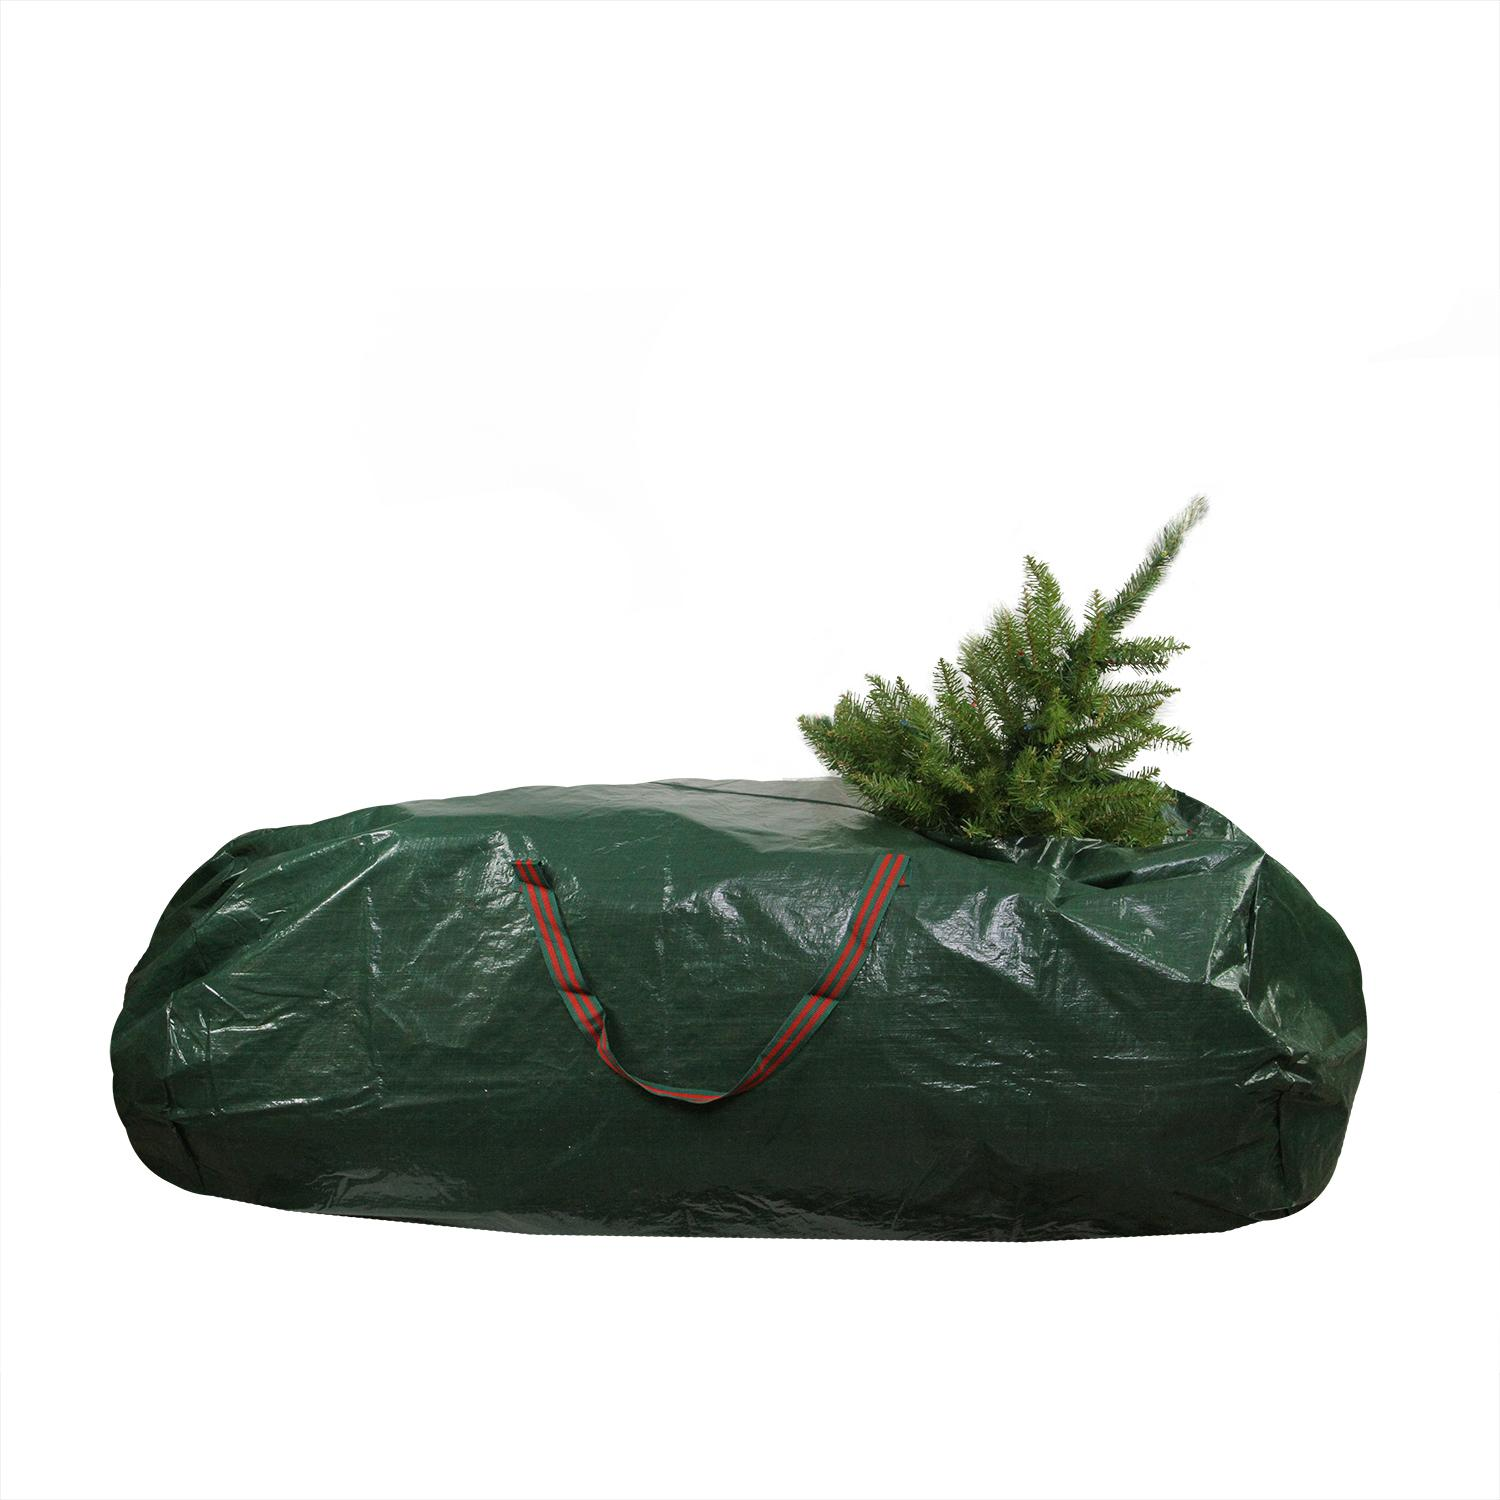 Artificial Christmas Tree Storage Bag   Fits Up To A 9u0027 Tree